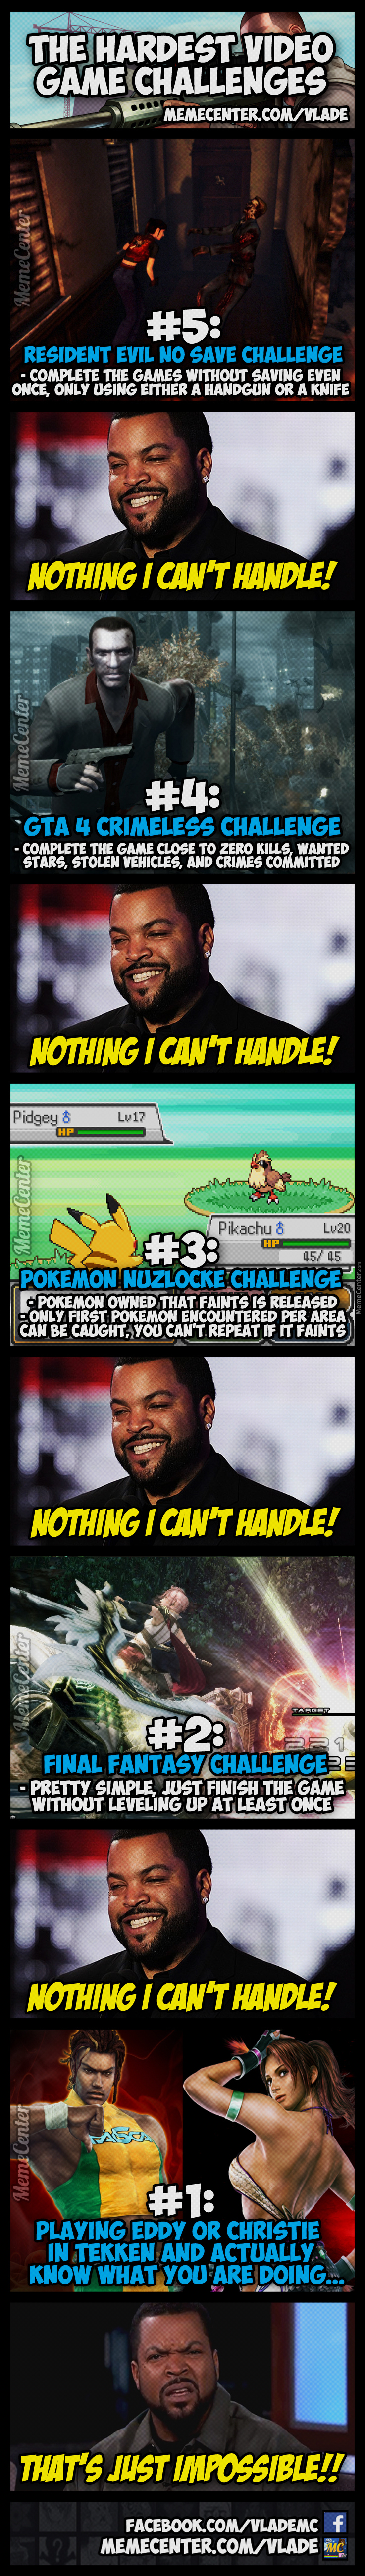 The Top 5 Video Game Challenges!